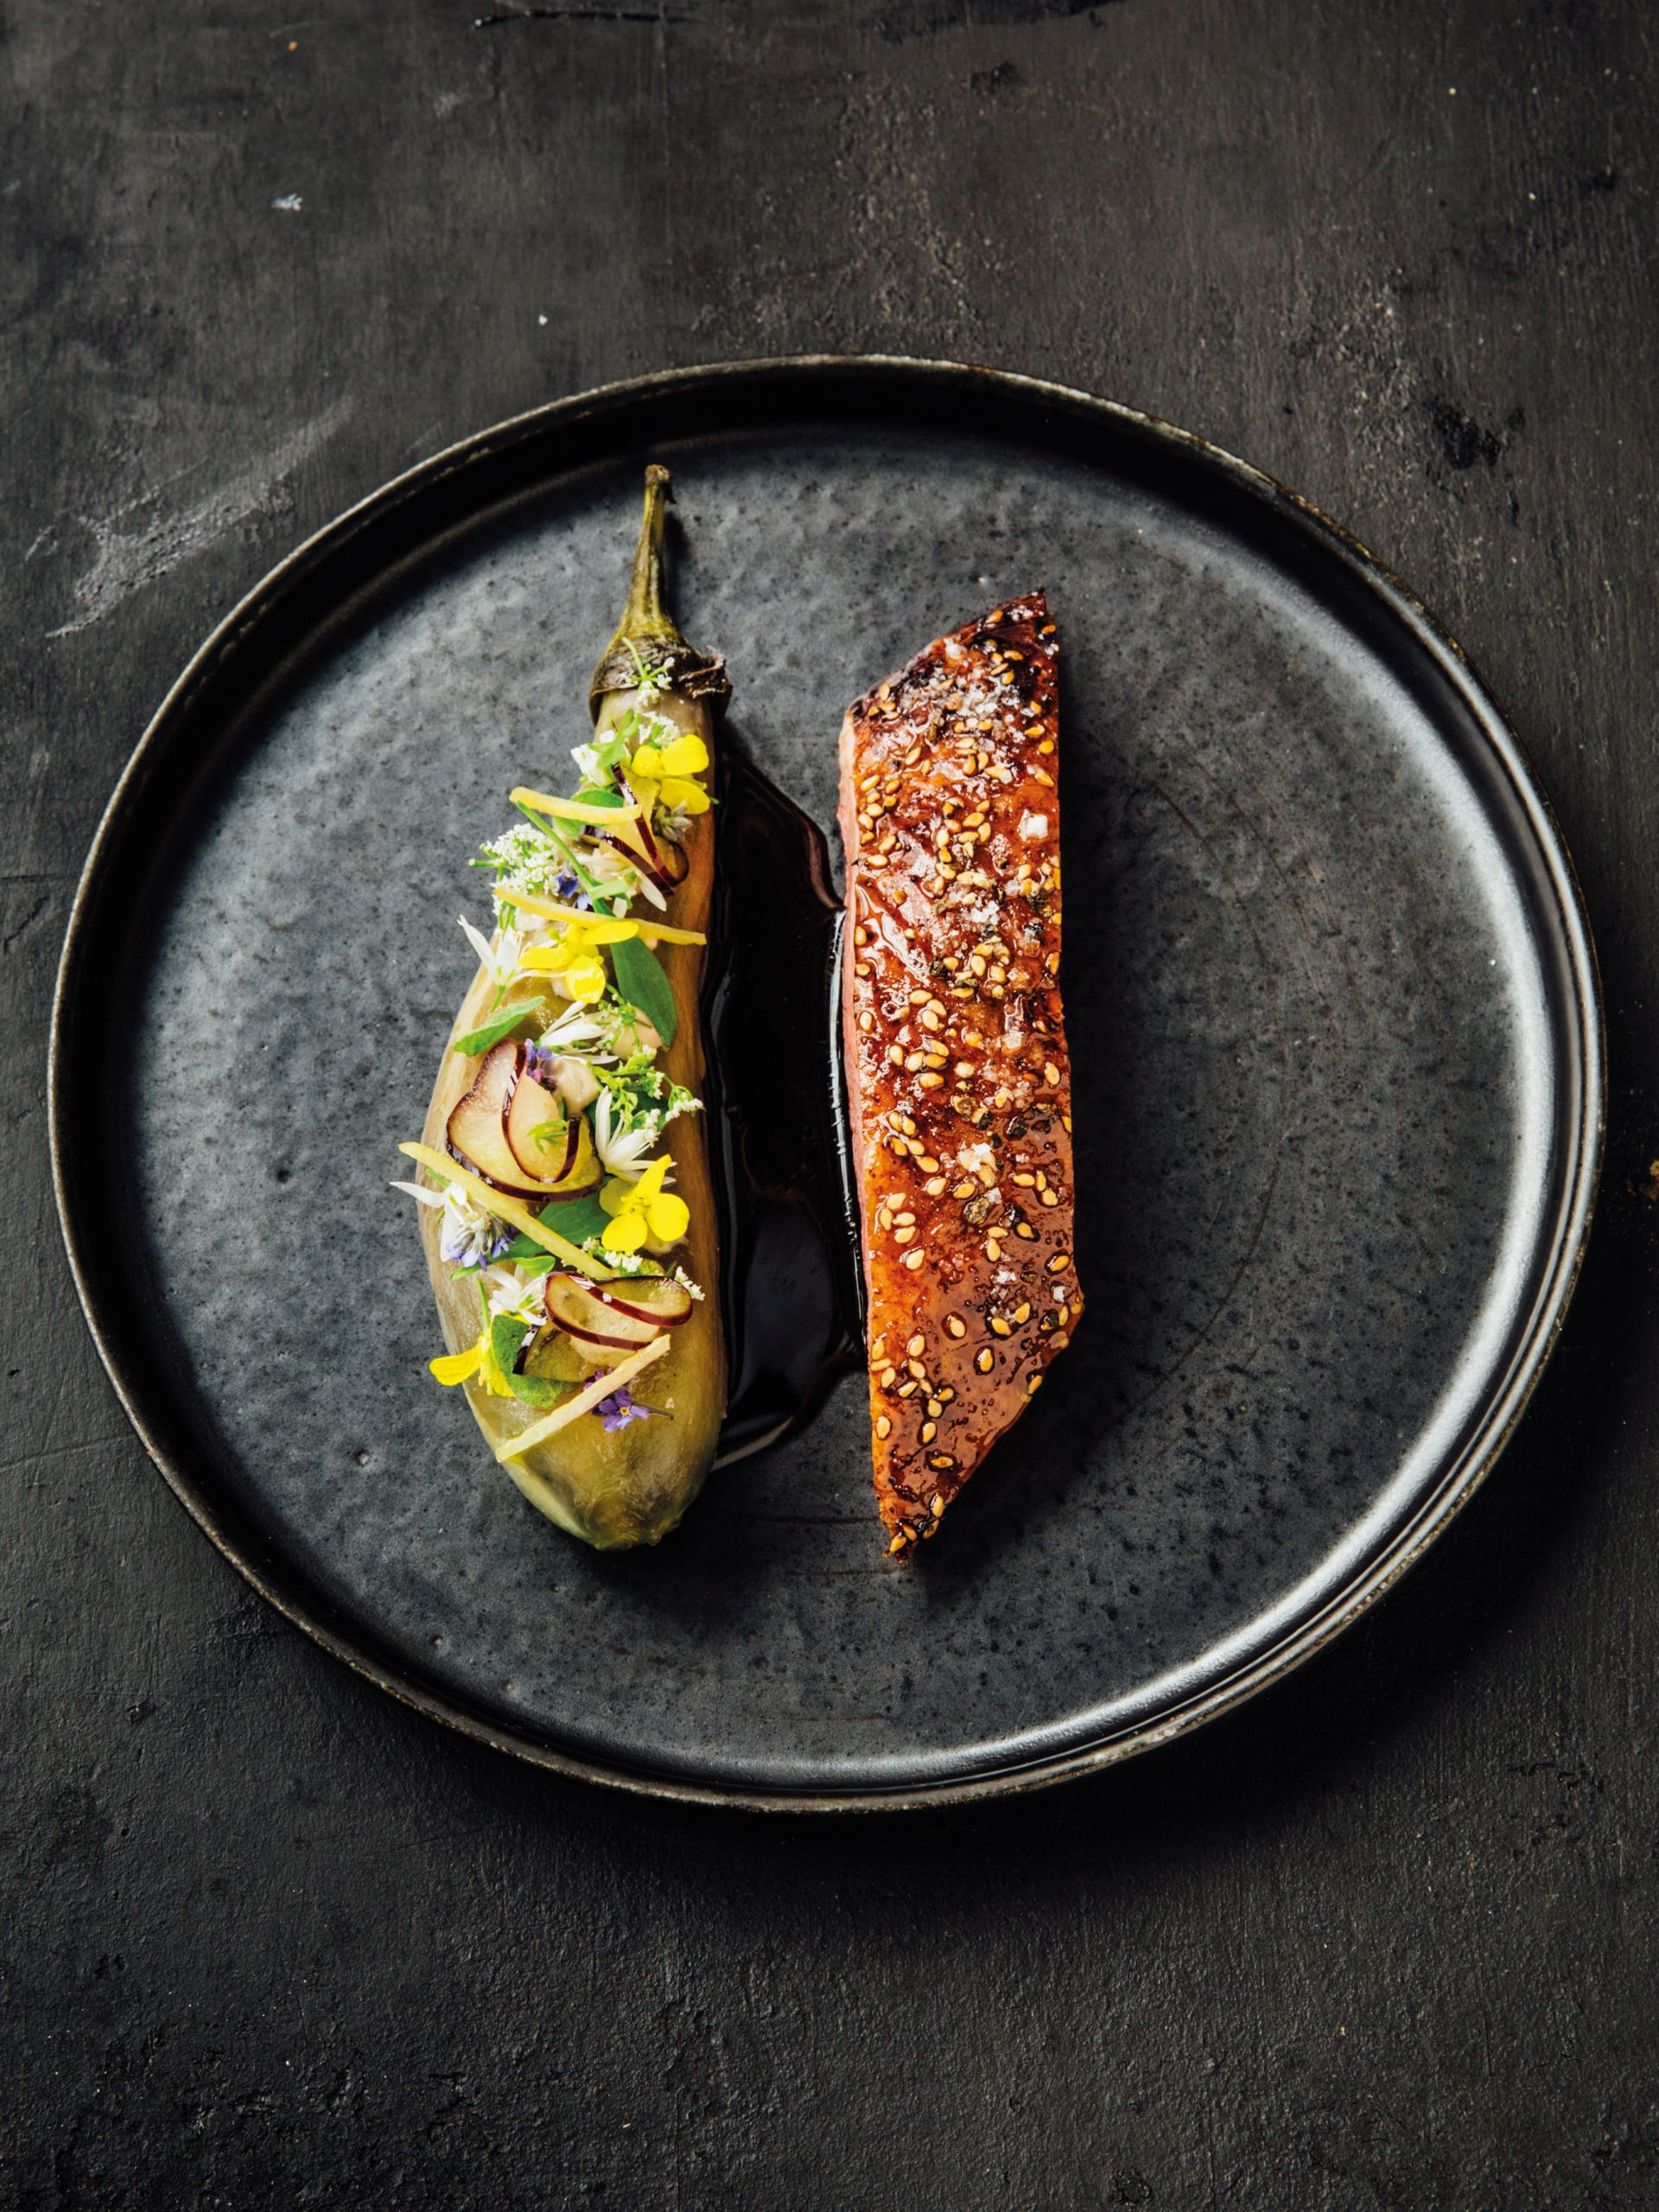 Sentier, Paris: things to do – Duck and aubergine at Frenchie